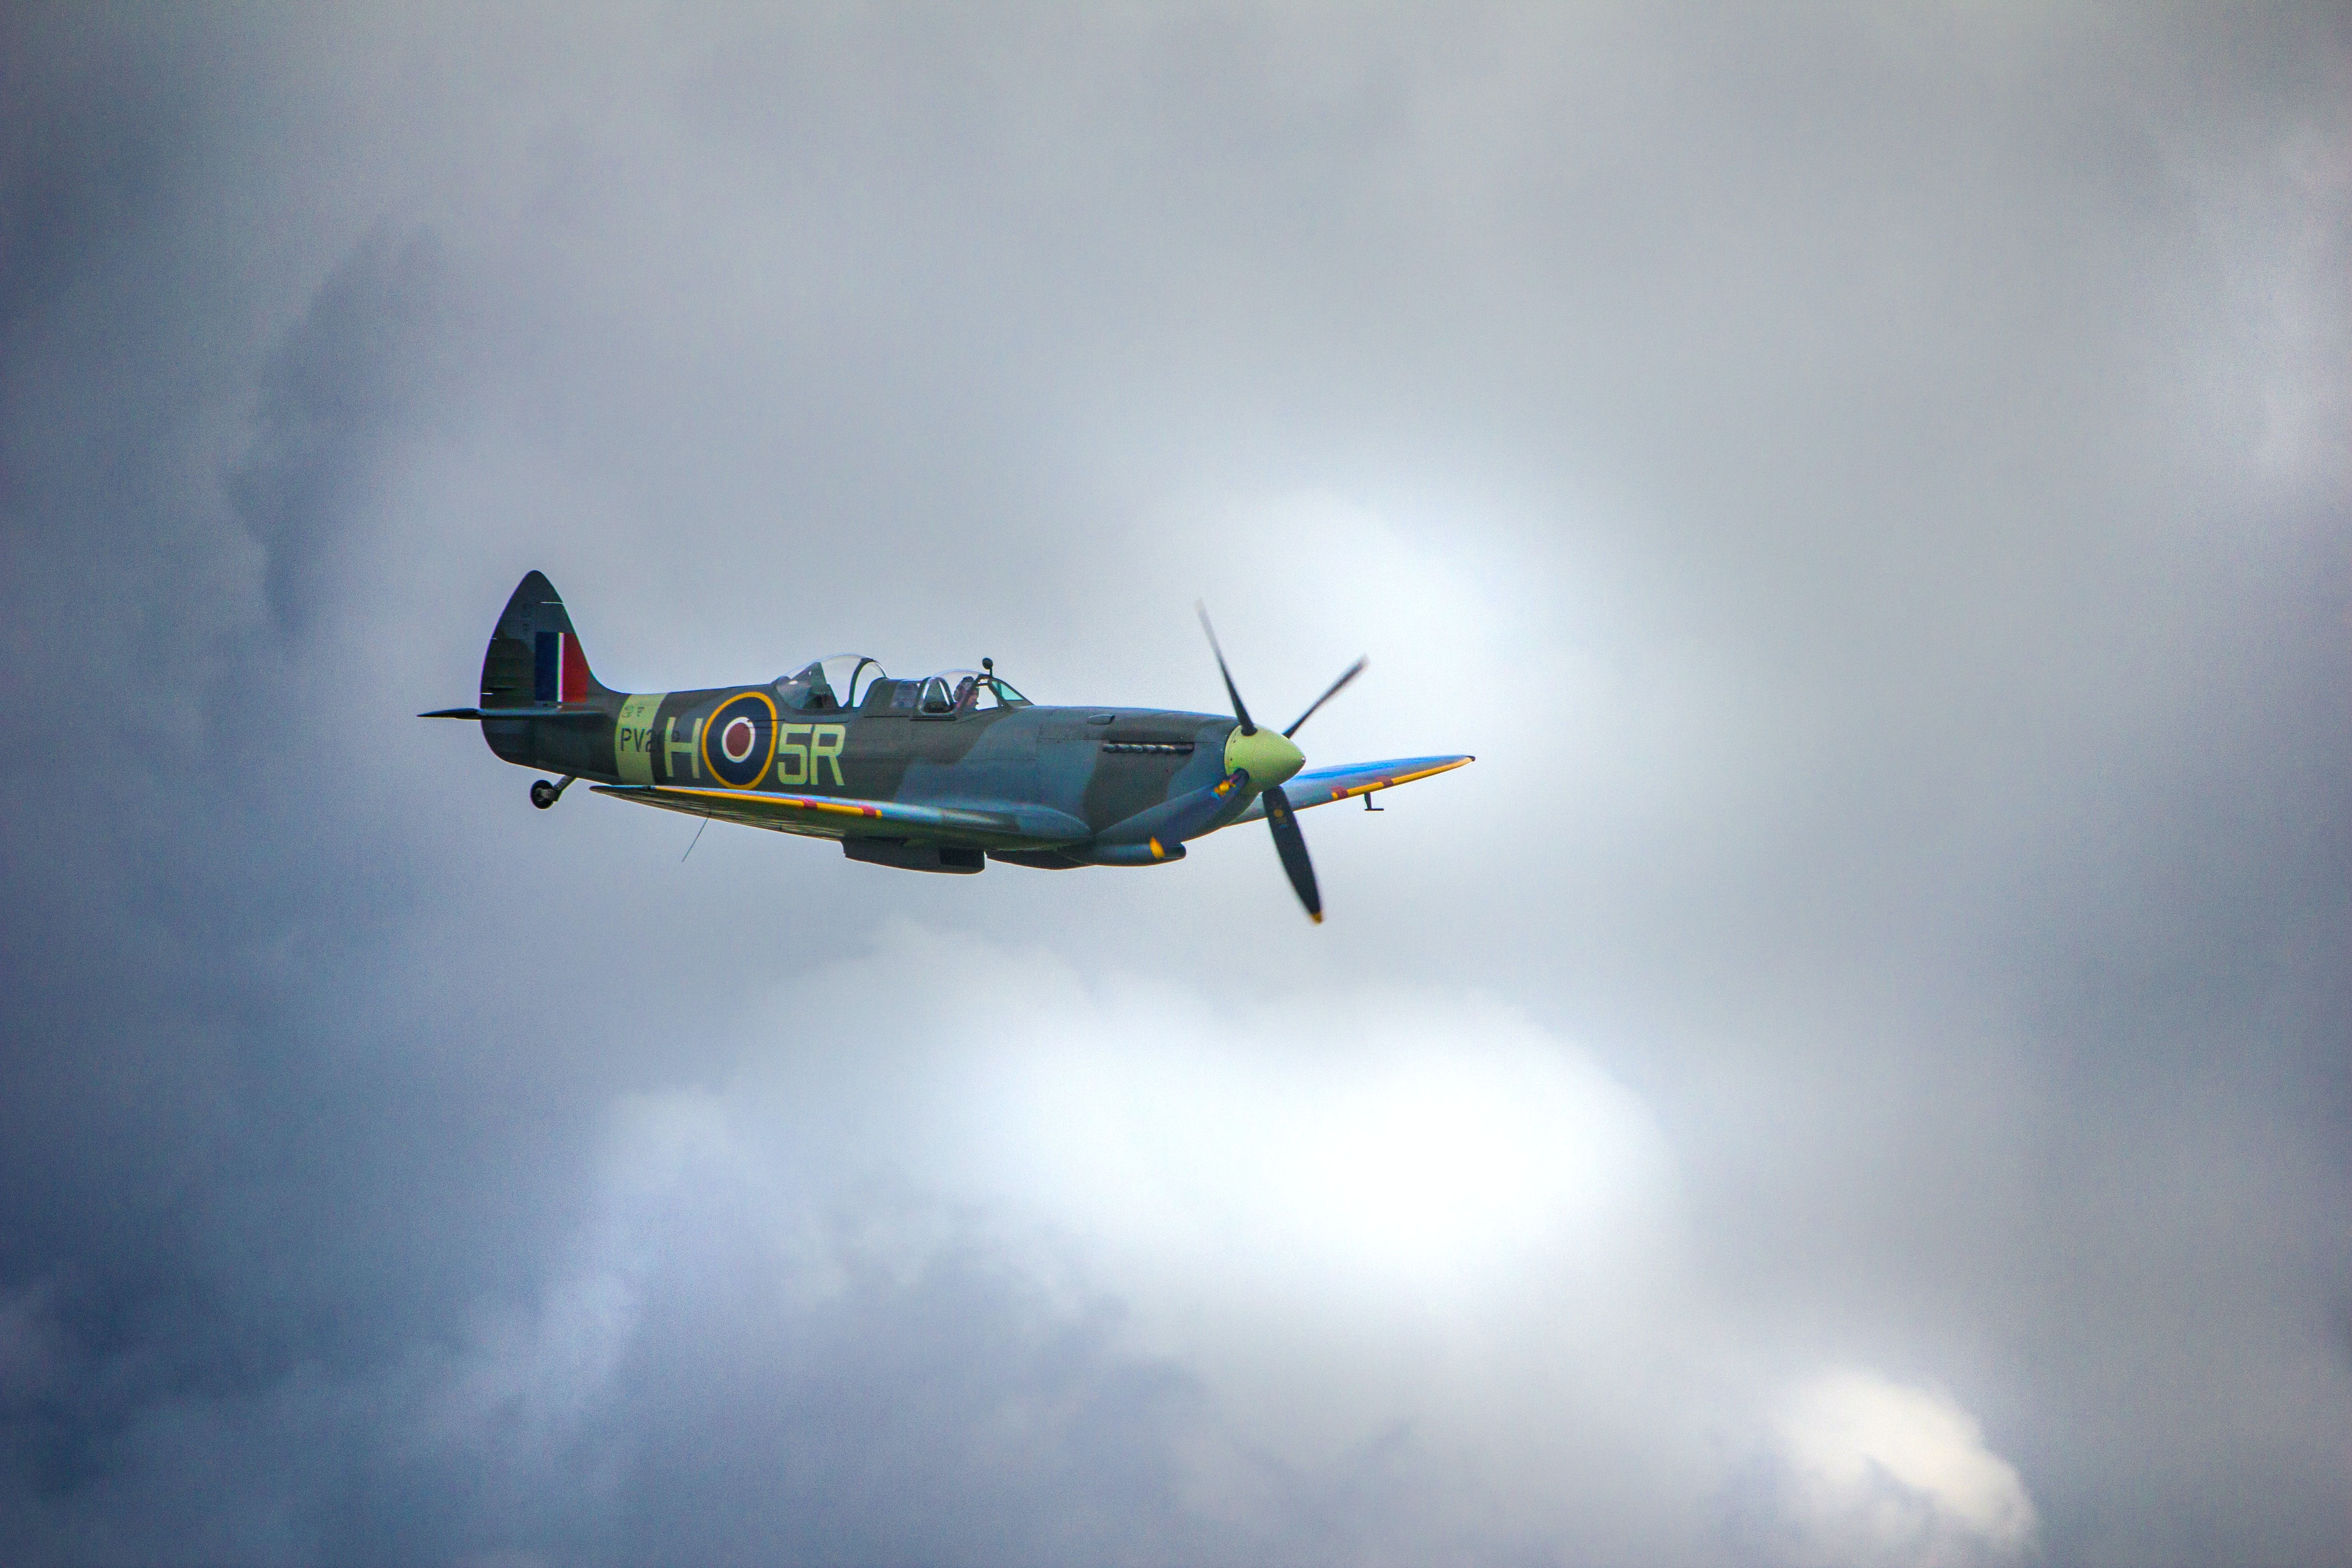 blue and green aircraft flyin in the sky